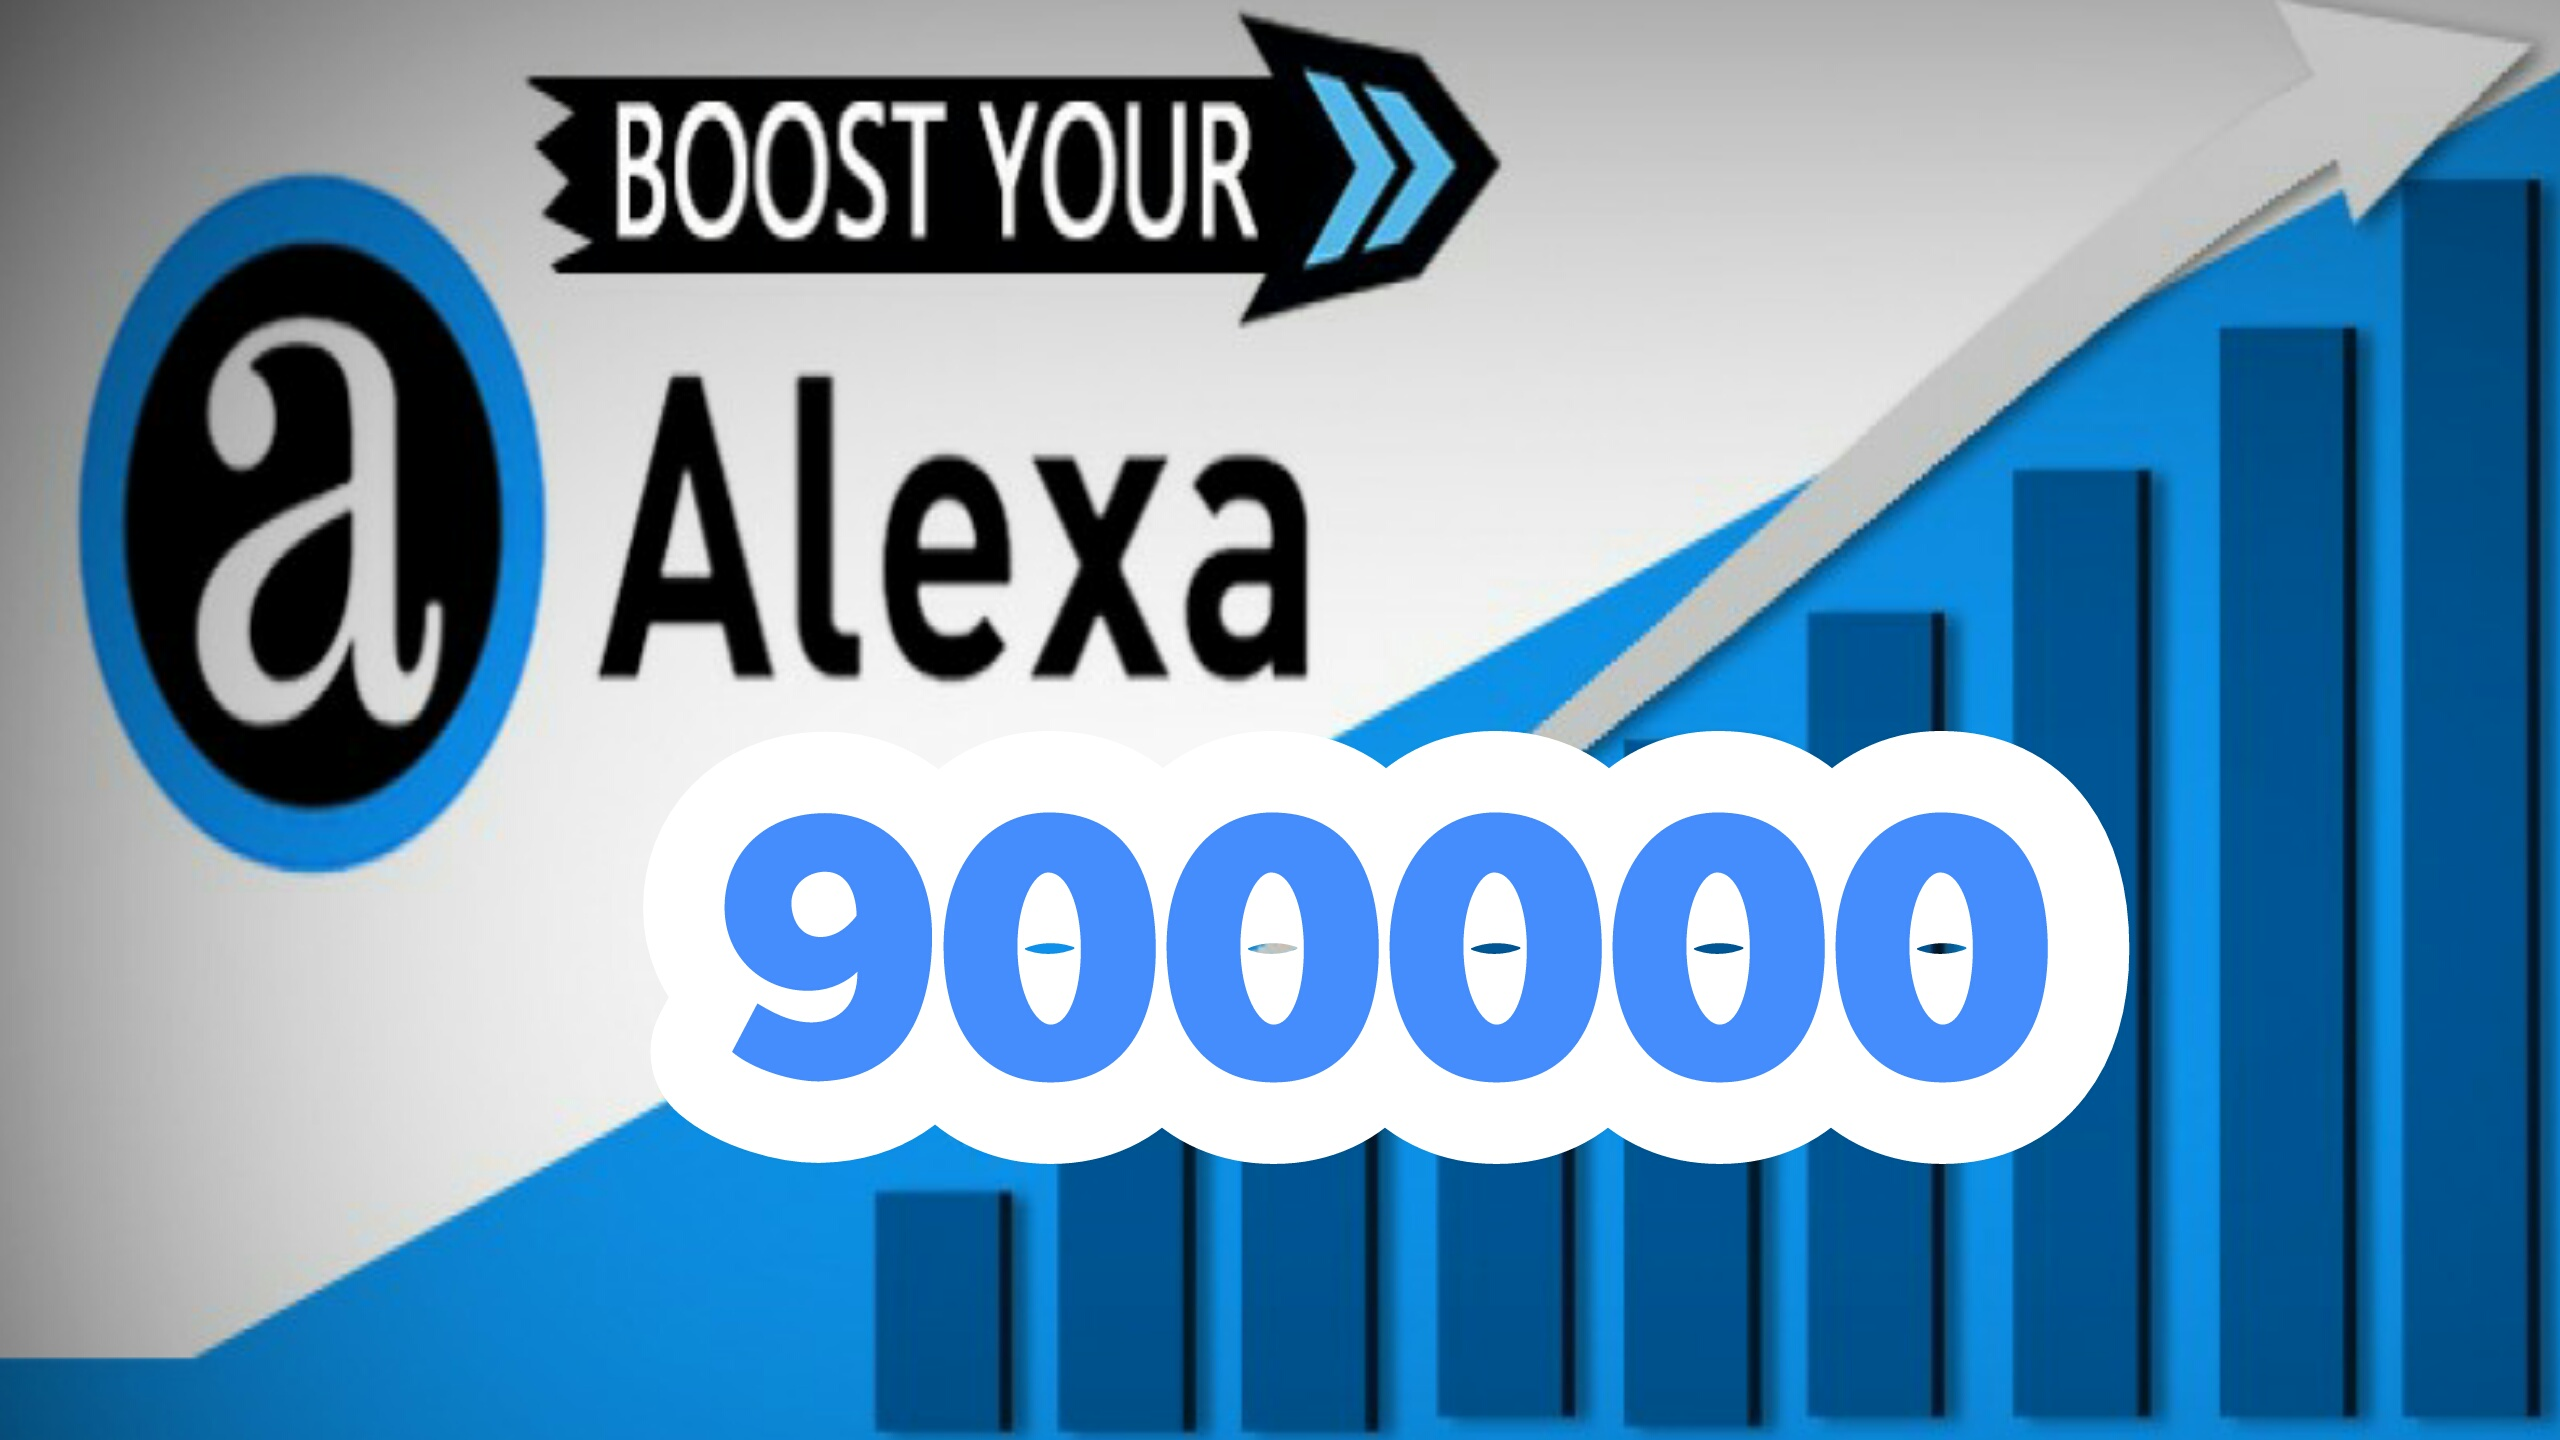 Reducing the order of alexa to 900k worldwide